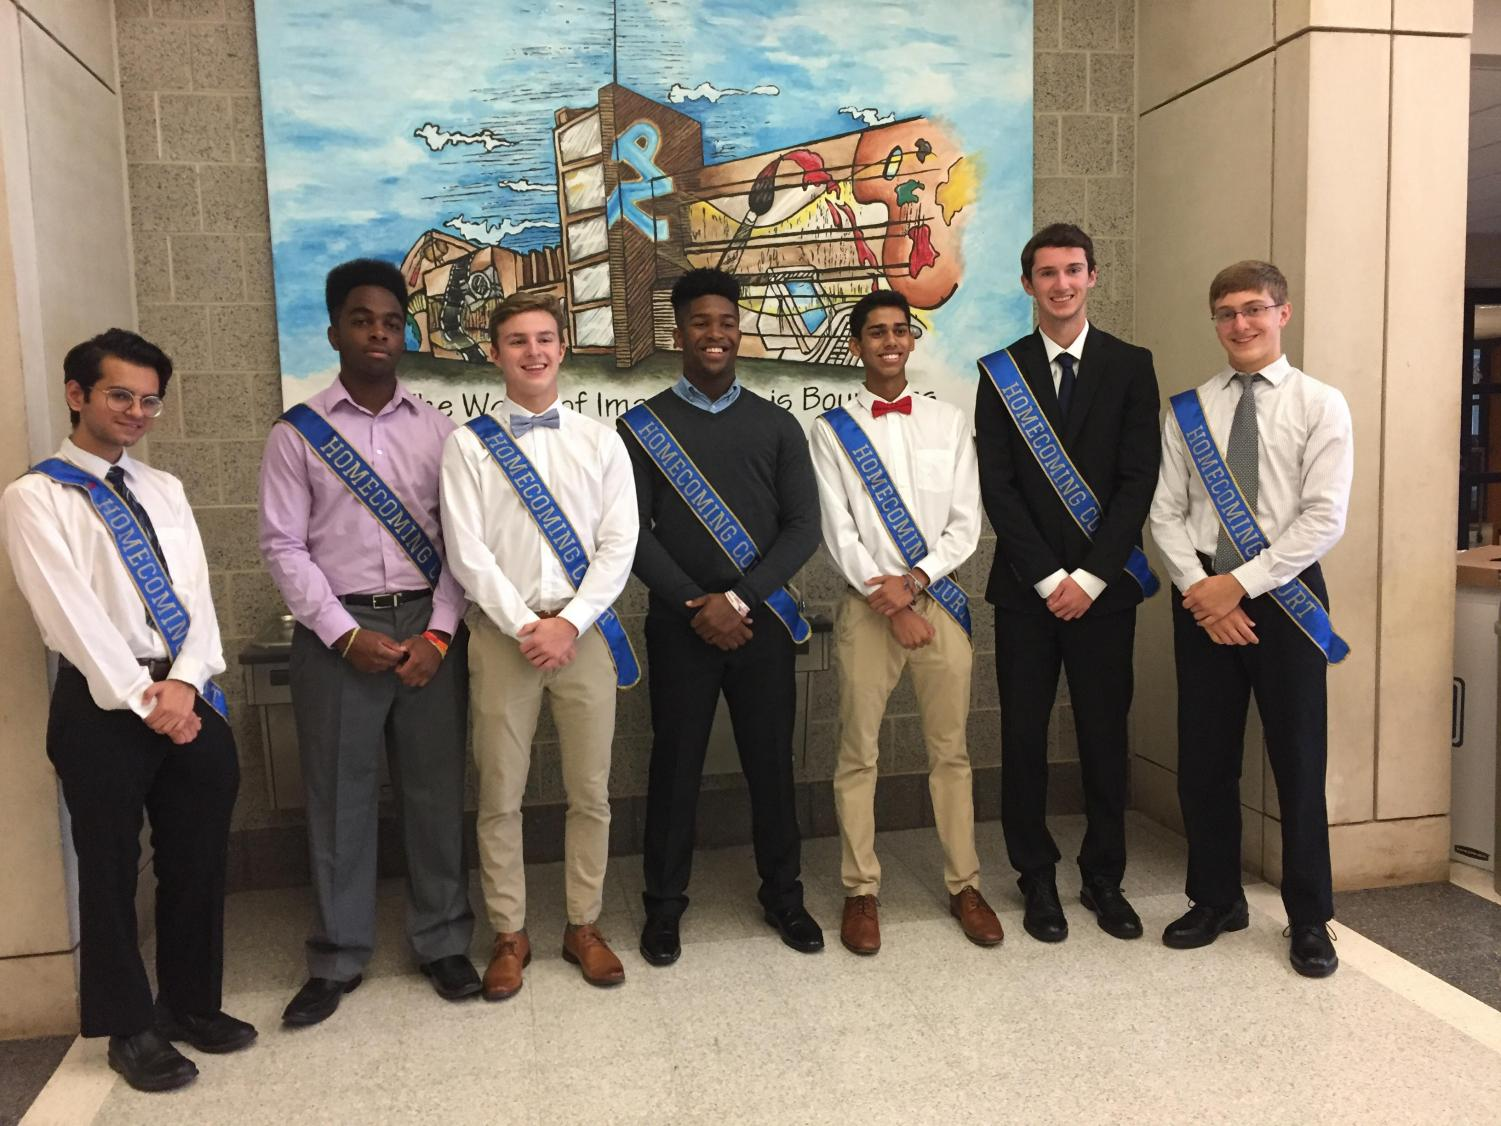 NPHS: The 2018 Homecoming King candidates pose for a picture